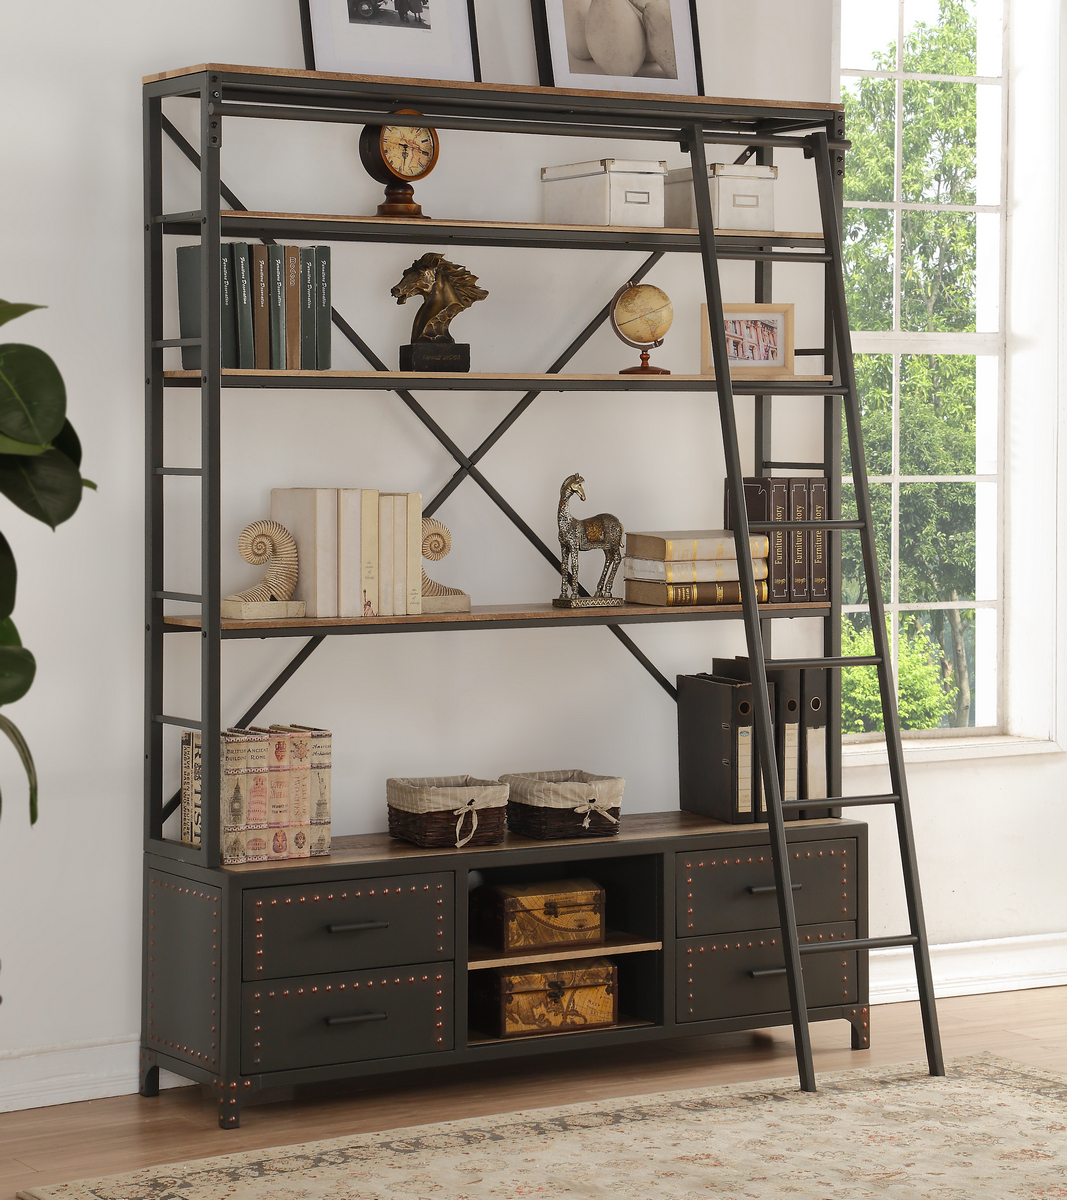 Actaki Bookshelf & Ladder in Sandy Gray - Acme Furniture 92433